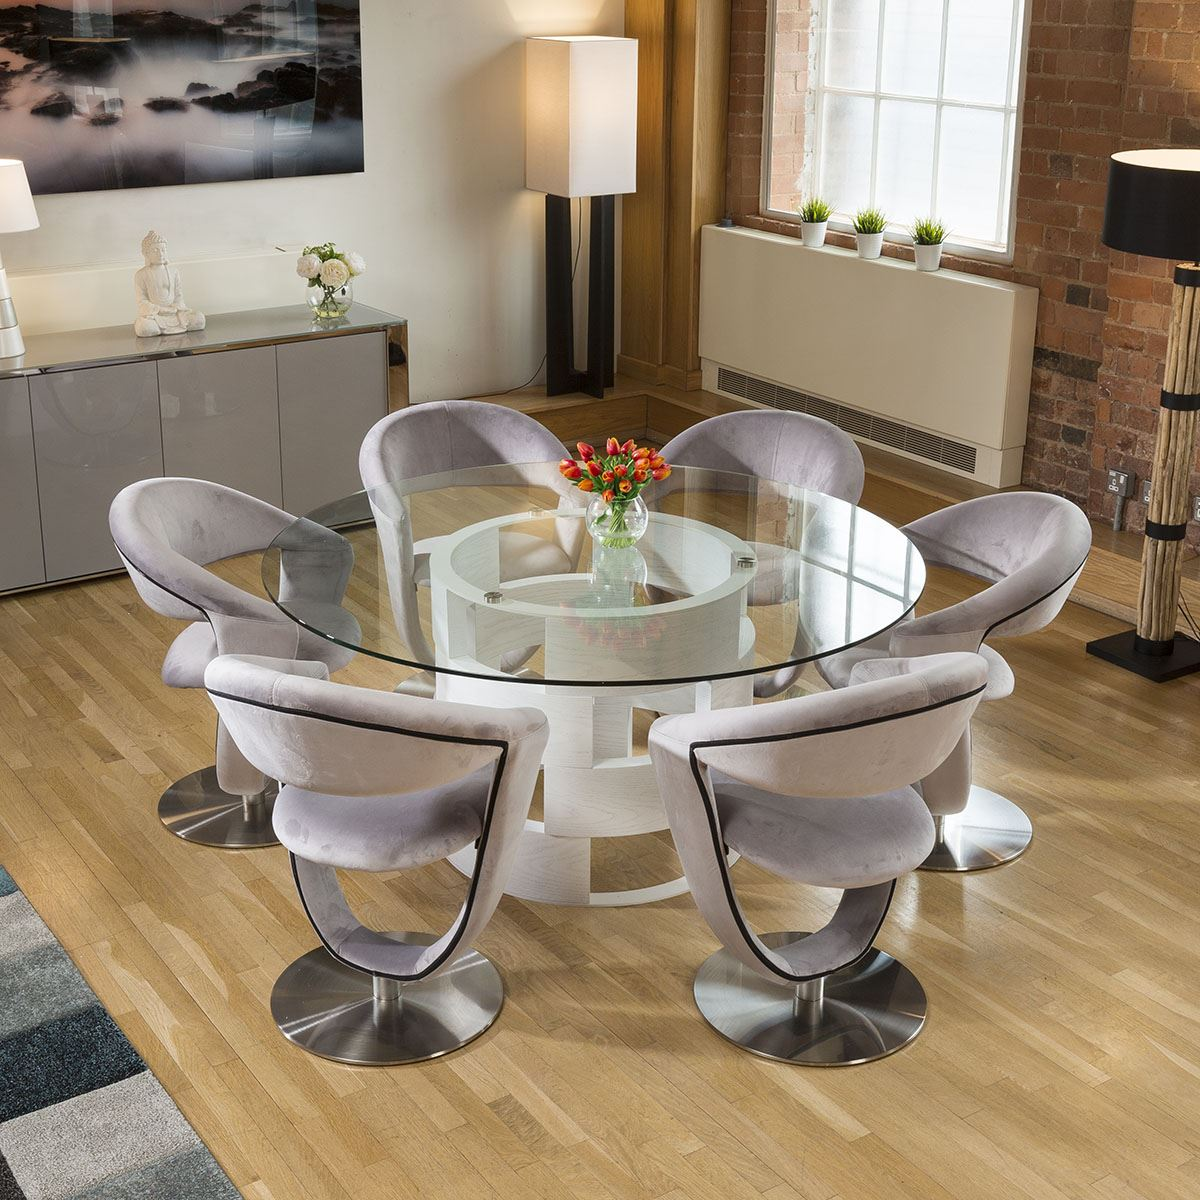 Round 1 6 Glass Top White Oak Dining Table 6 Grey Velvet Swivel Chairs Ebay